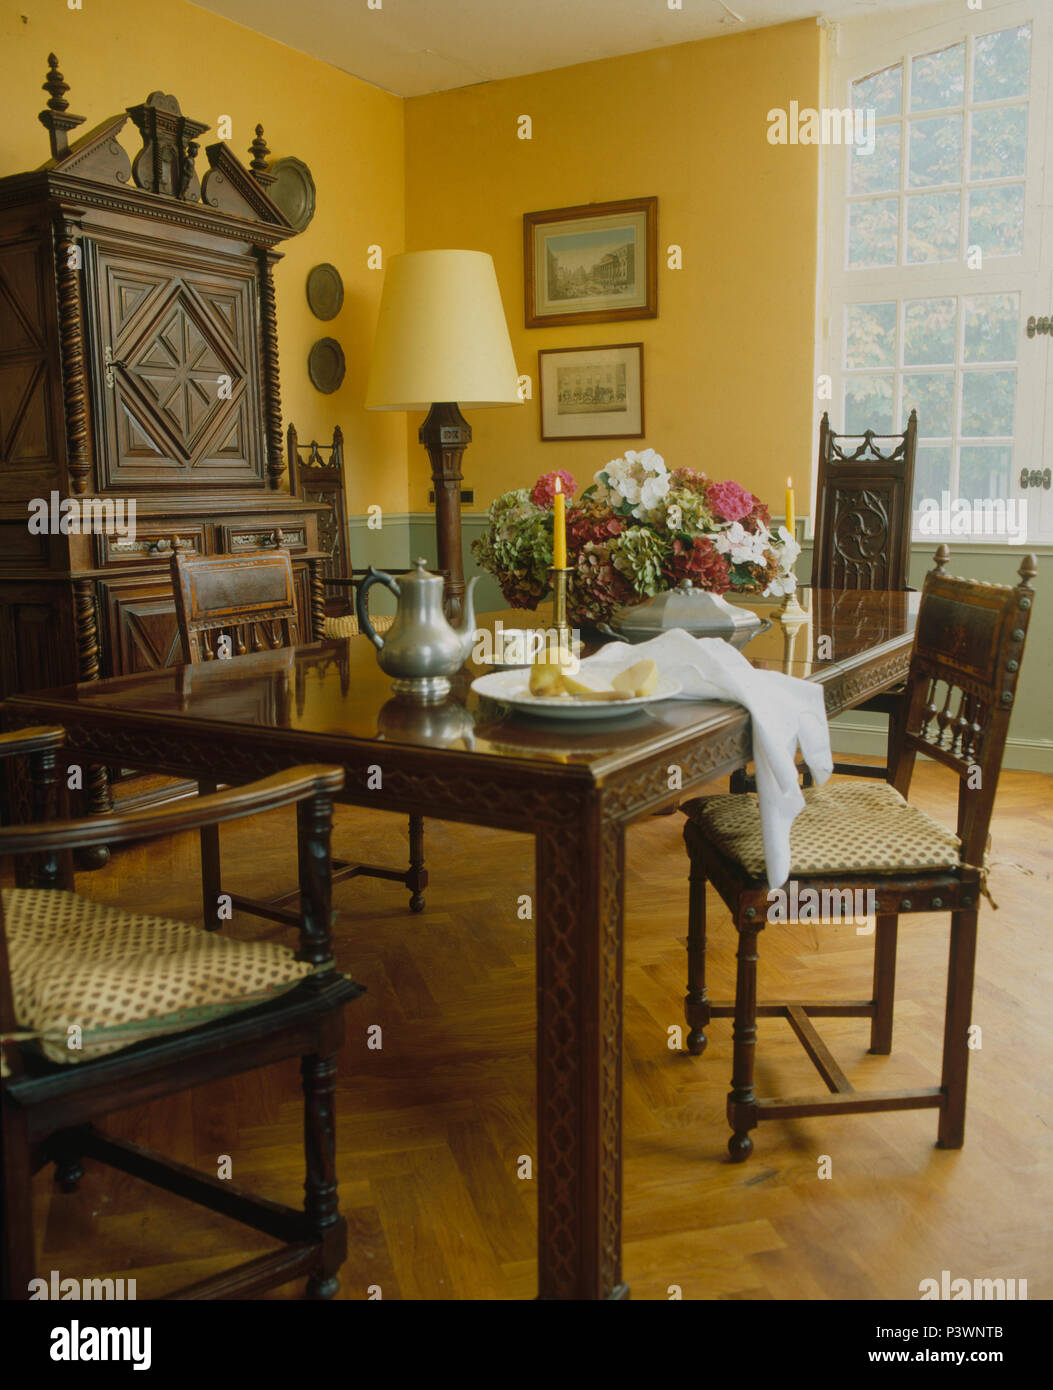 Parquet Flooring And Dark Wood Furniture In Yellow French Country Dining  Room